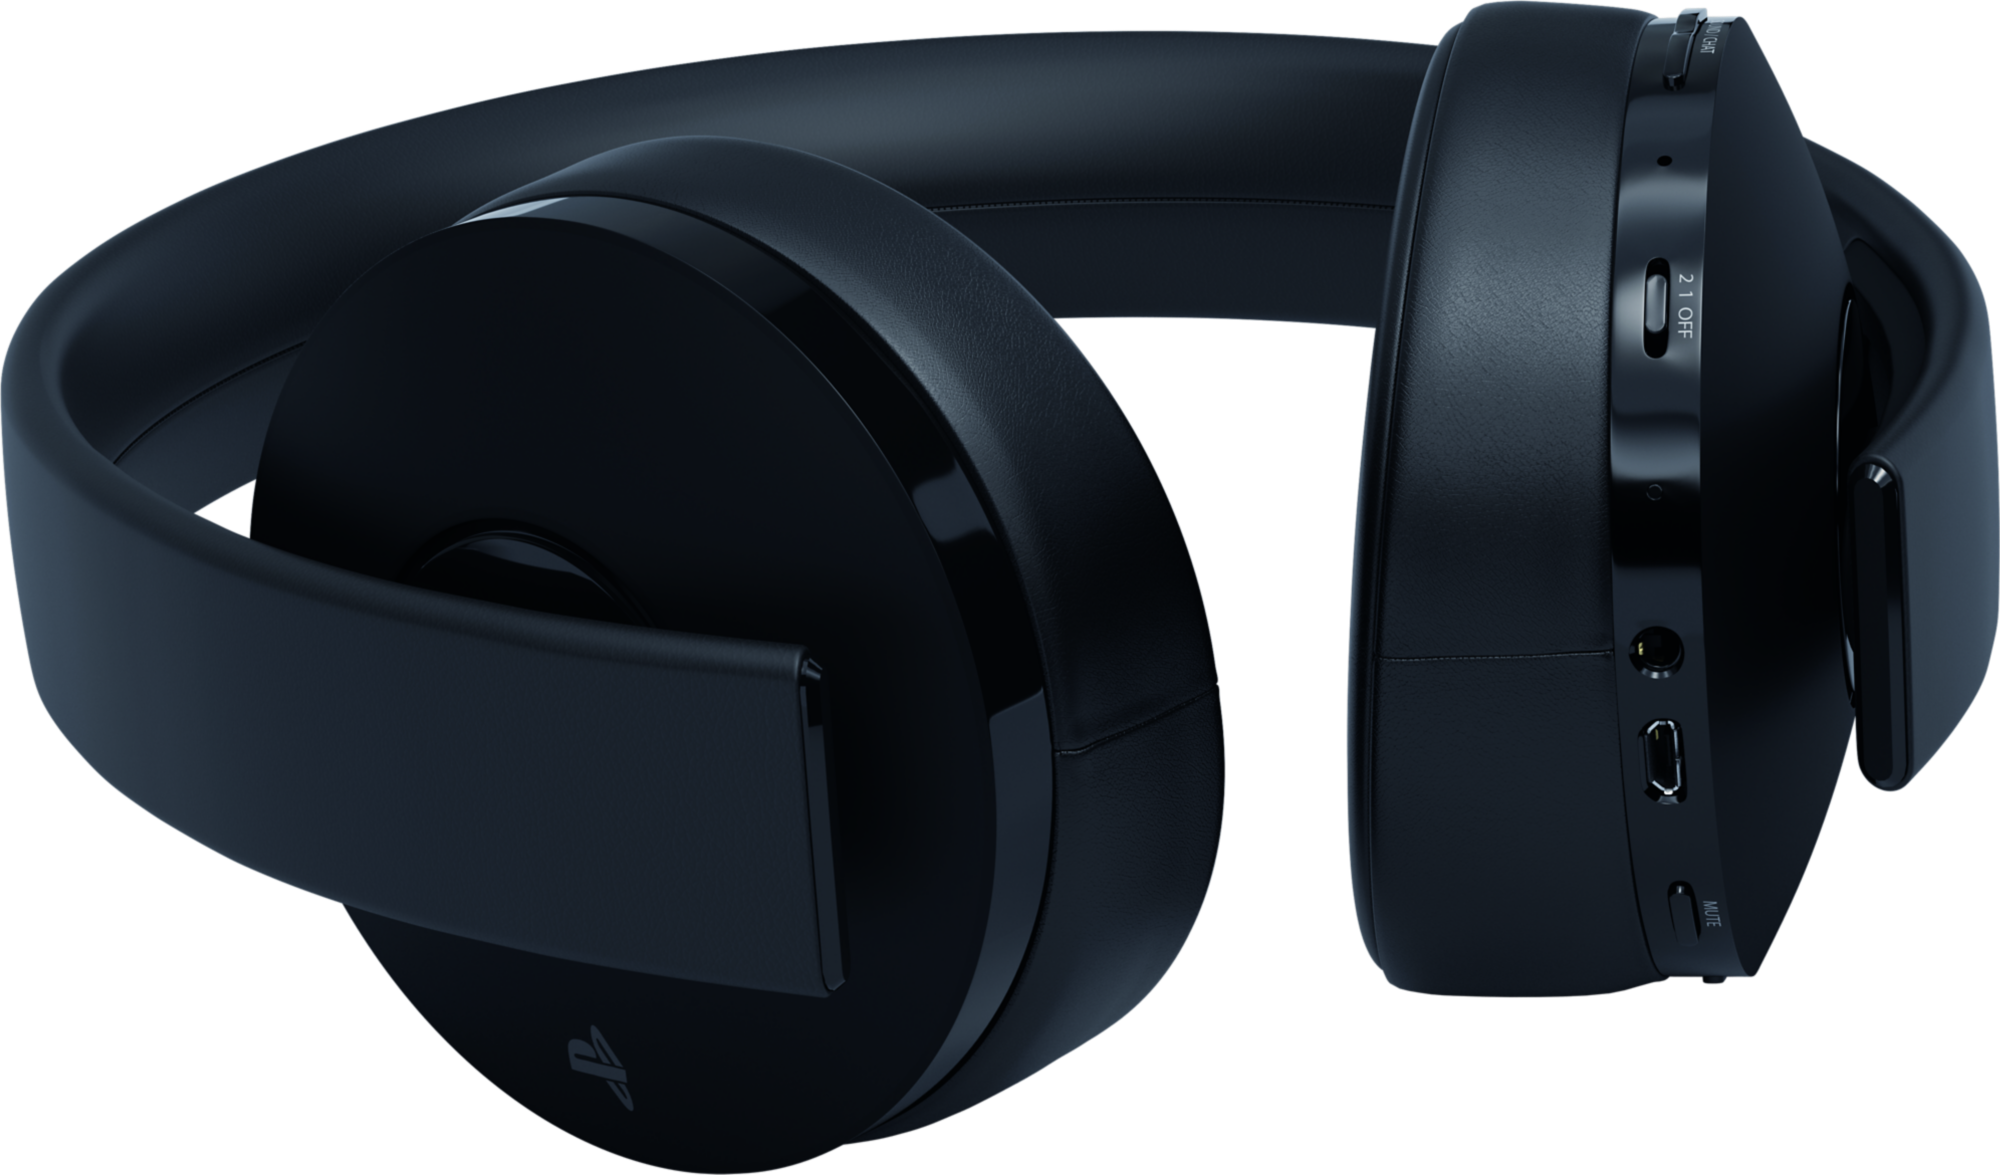 Gold Wireless Stereo Headset v2 (Black)